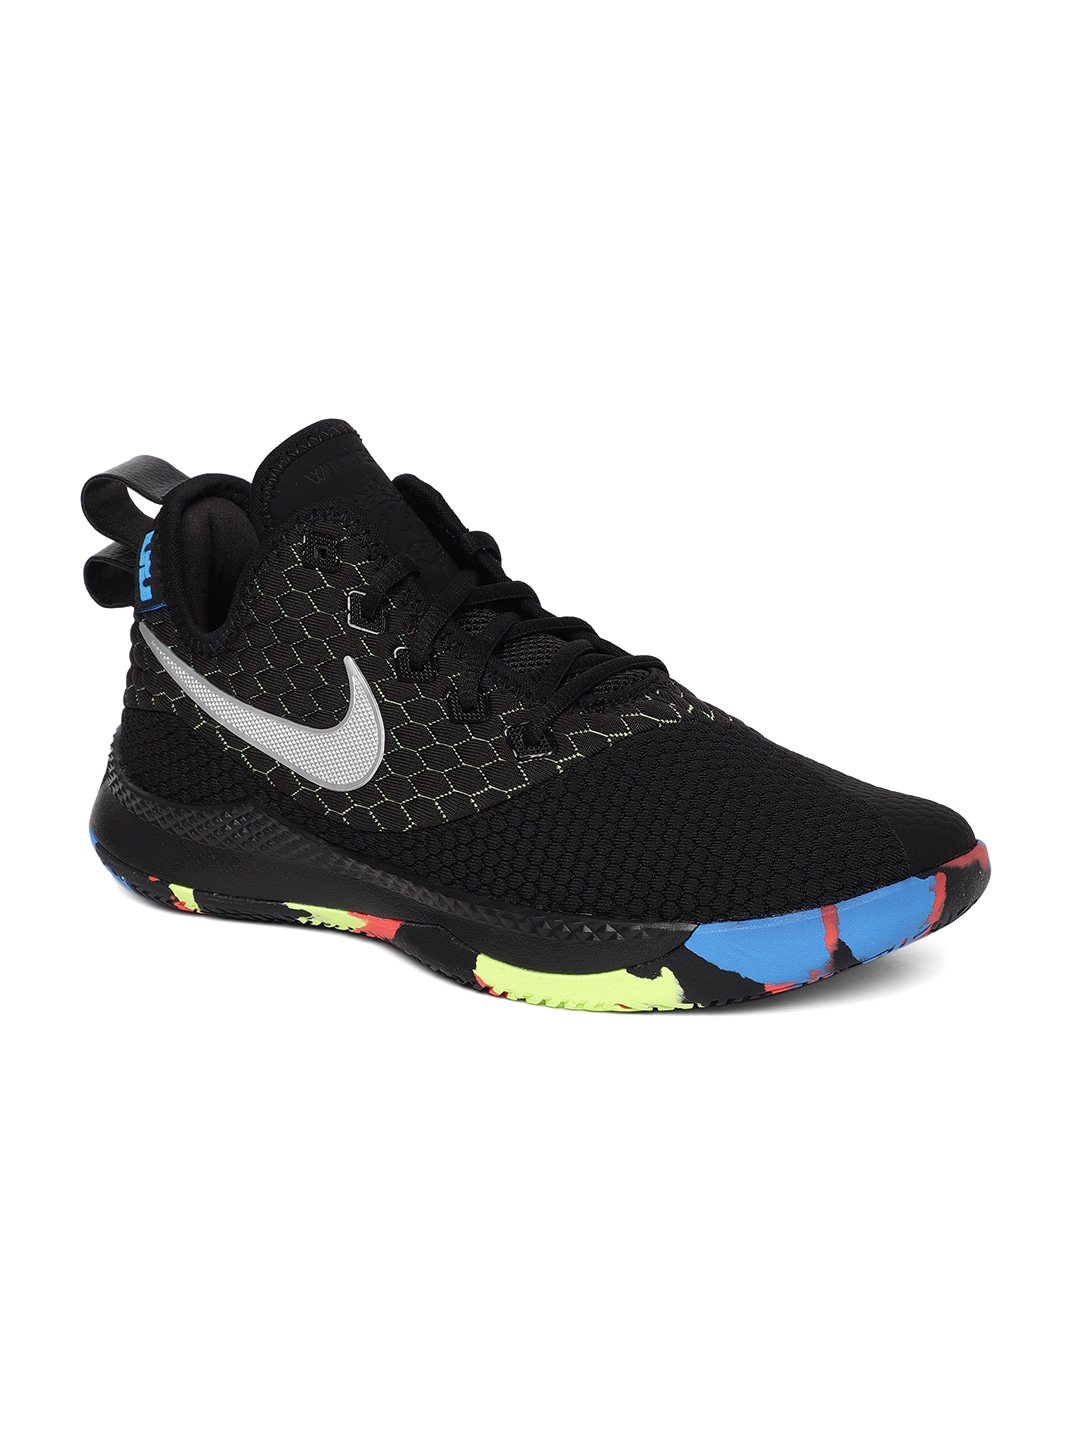 best authentic a60ed 85d0b Nike Lebron - Buy Nike Lebron online in India